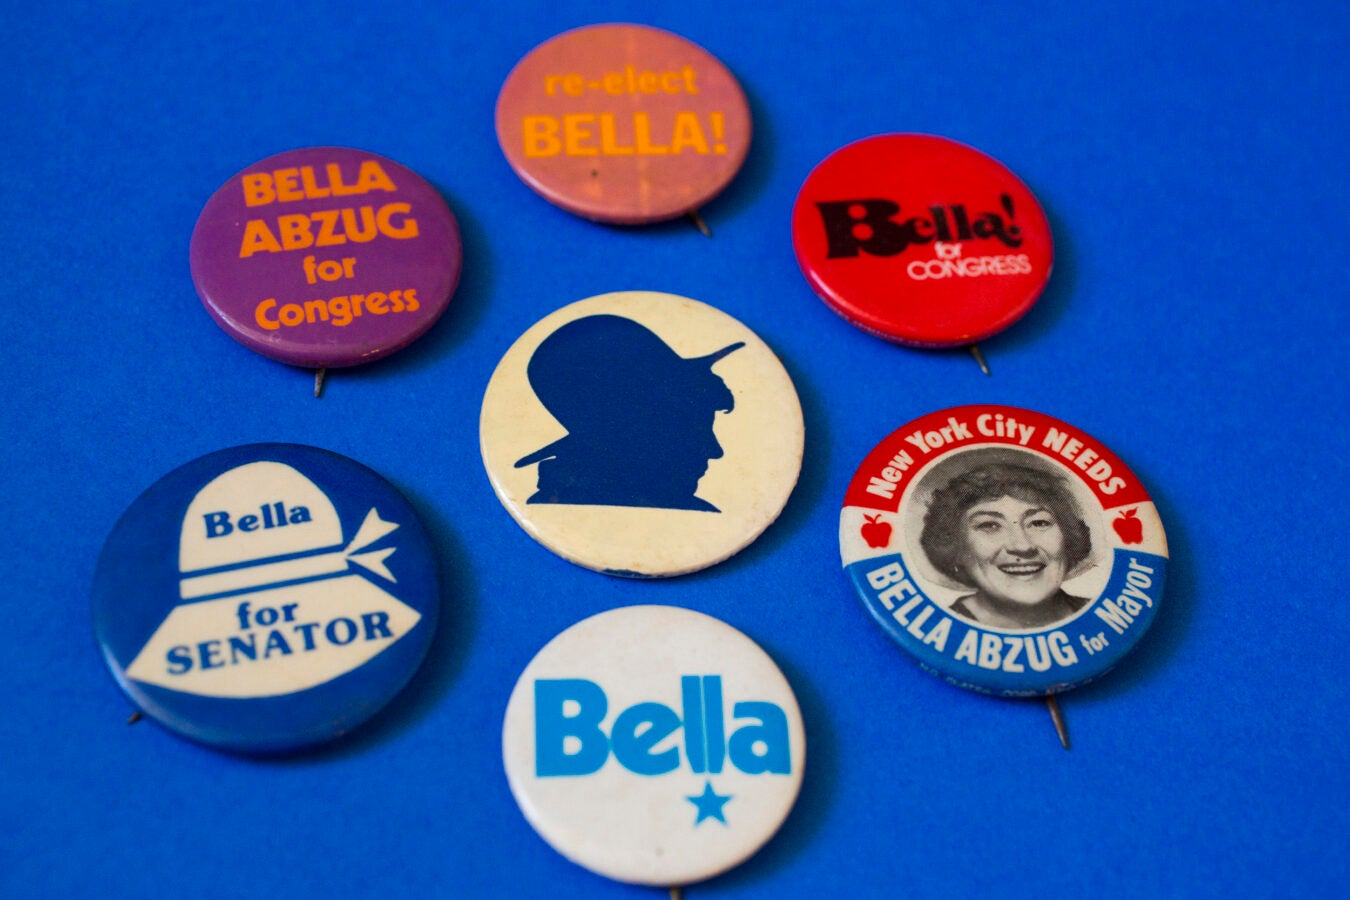 U.S. Rep. and social activist Bella Abzug, noted for her signature hats.